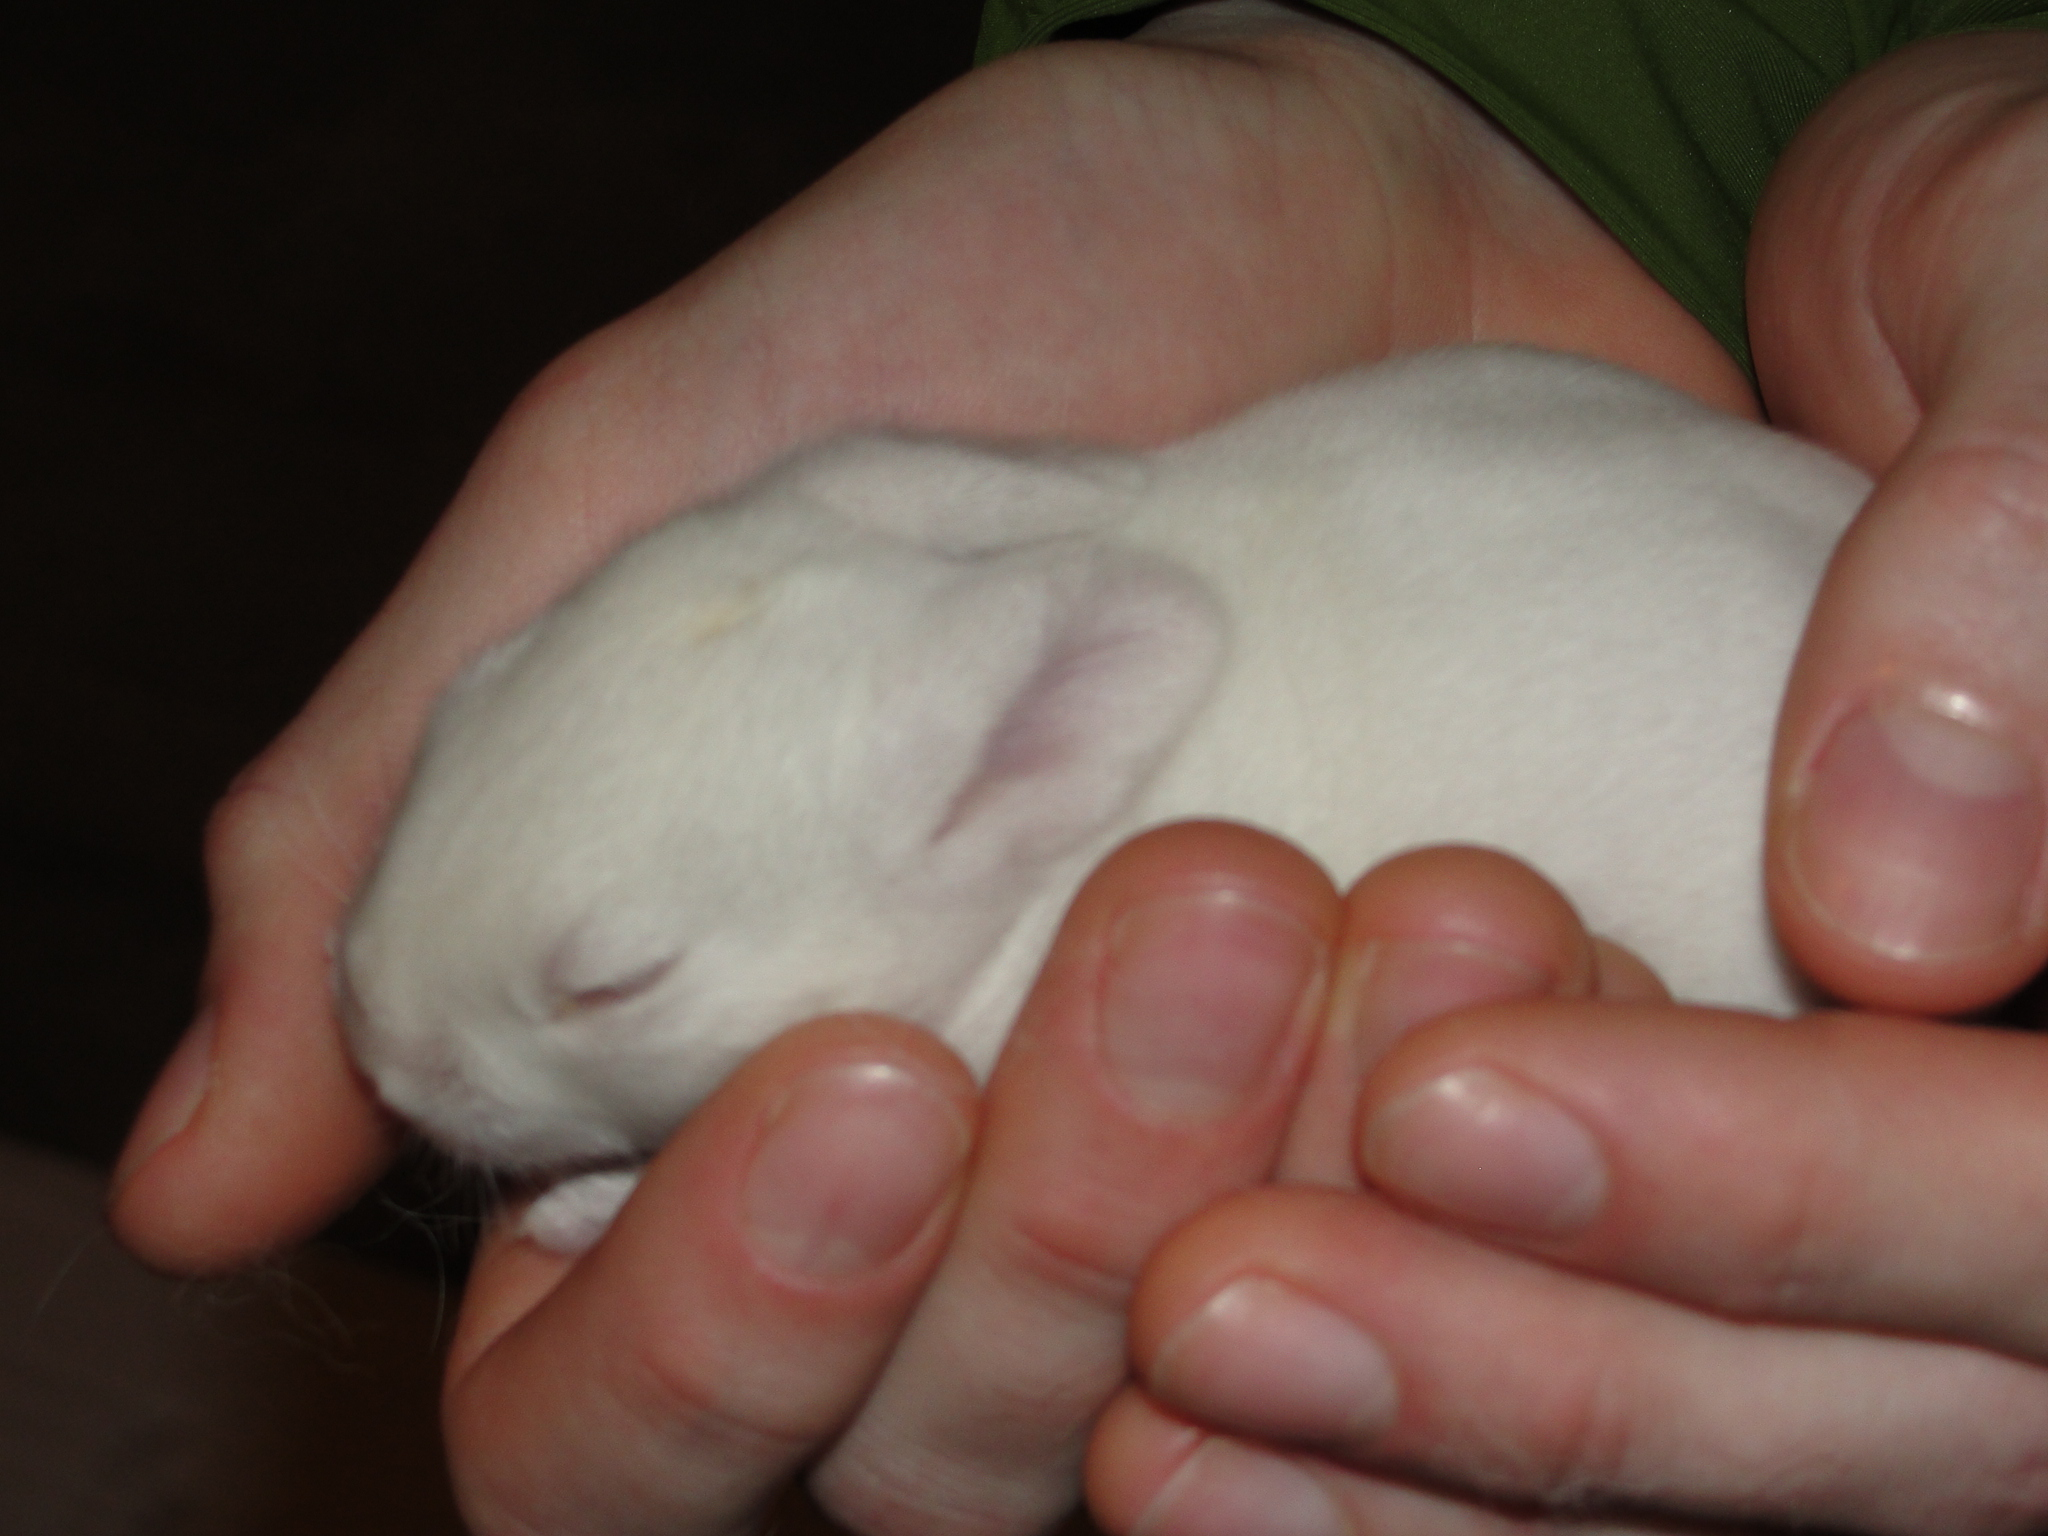 There are a total of 7 baby New Zealand White rabbits now at the